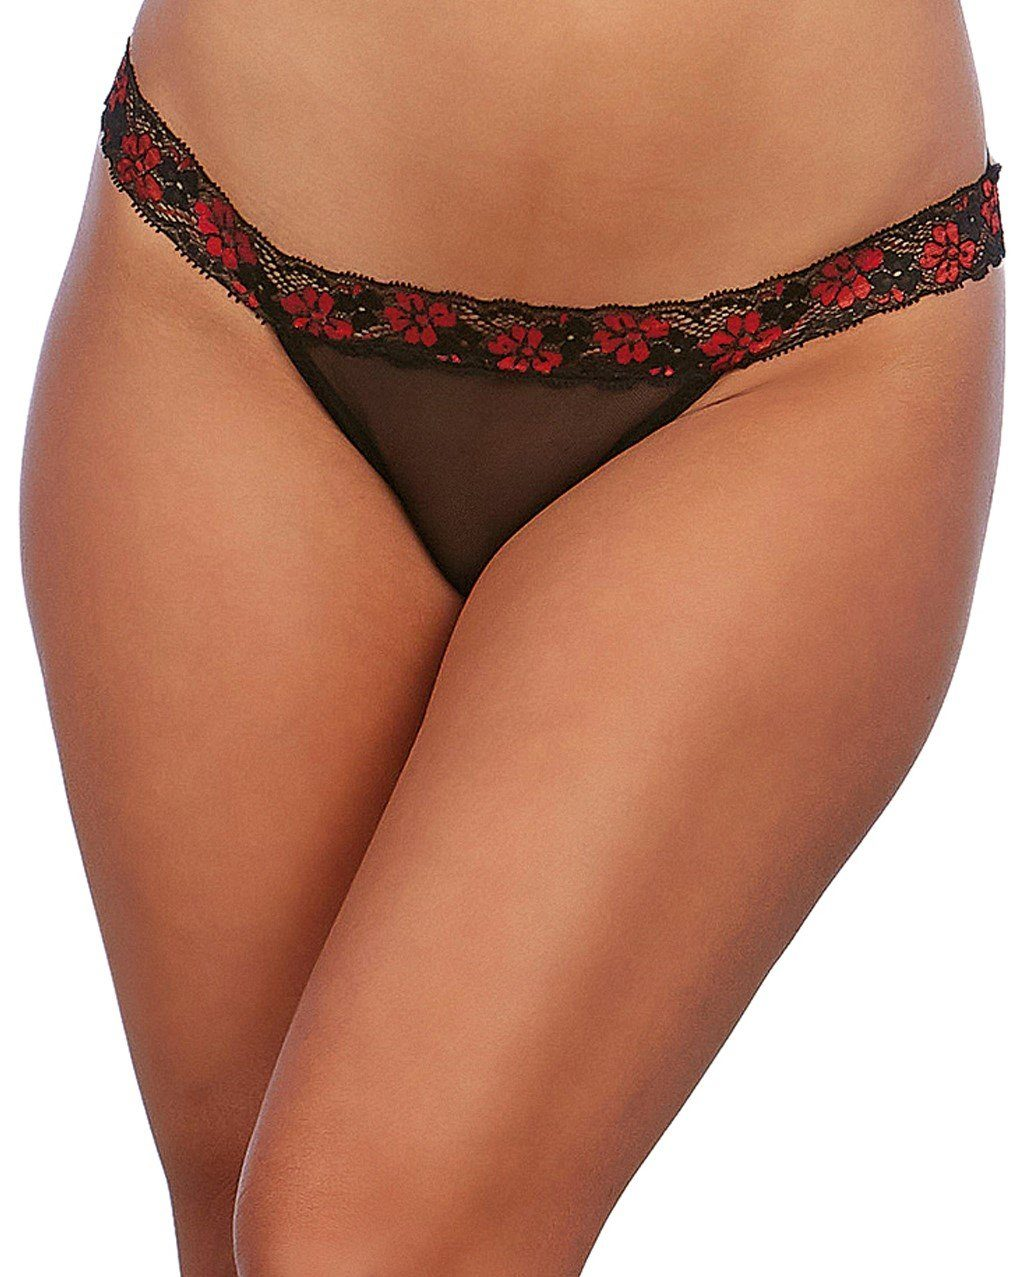 Cross-Dye Lace Strappy Panty Panty Dreamgirl International